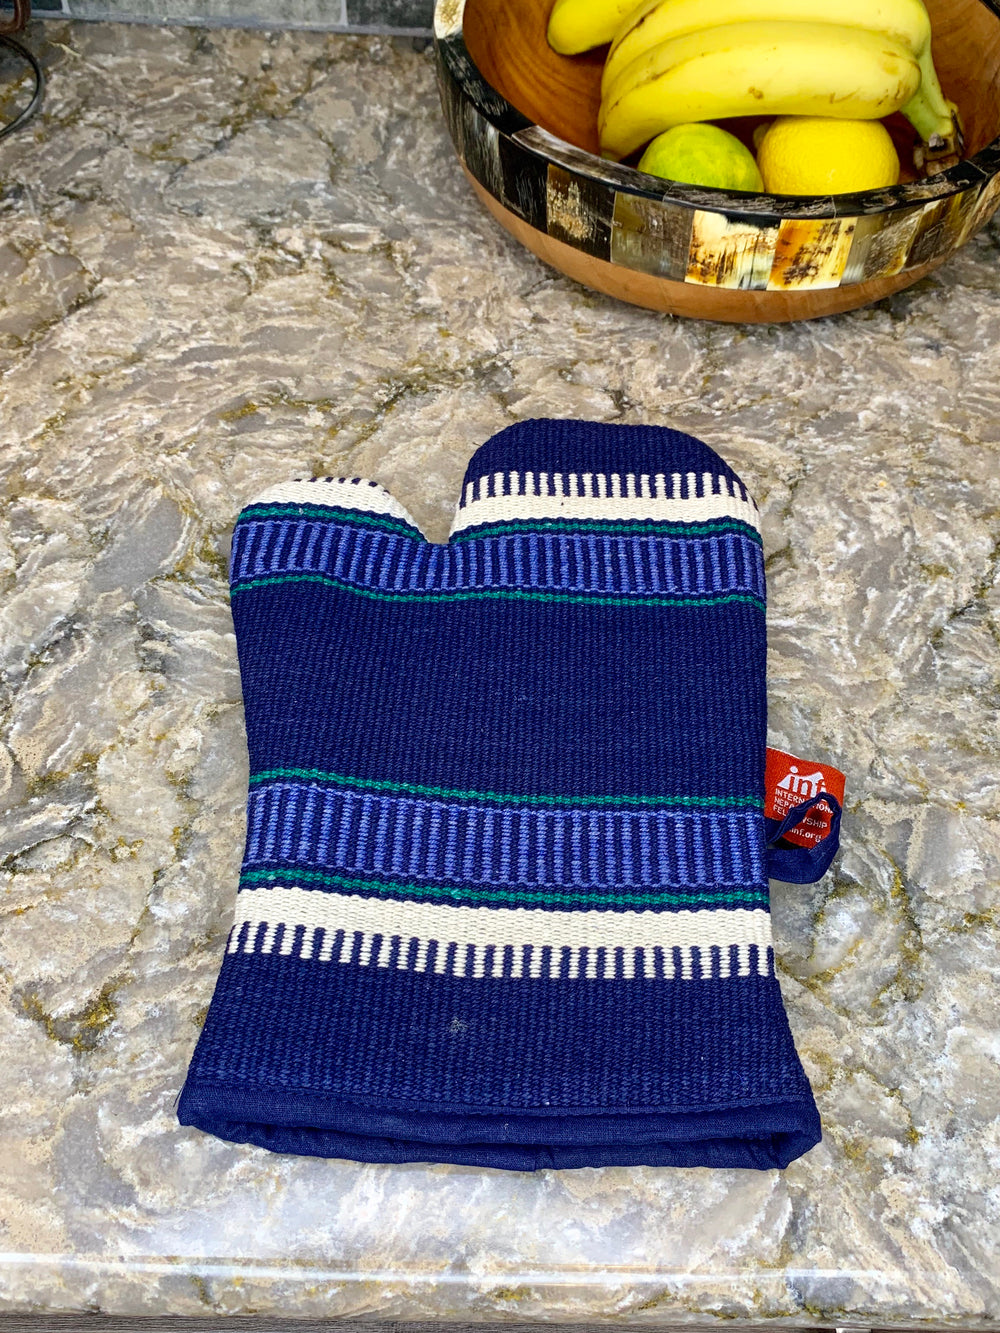 Oven Mitts by INF from Nepal